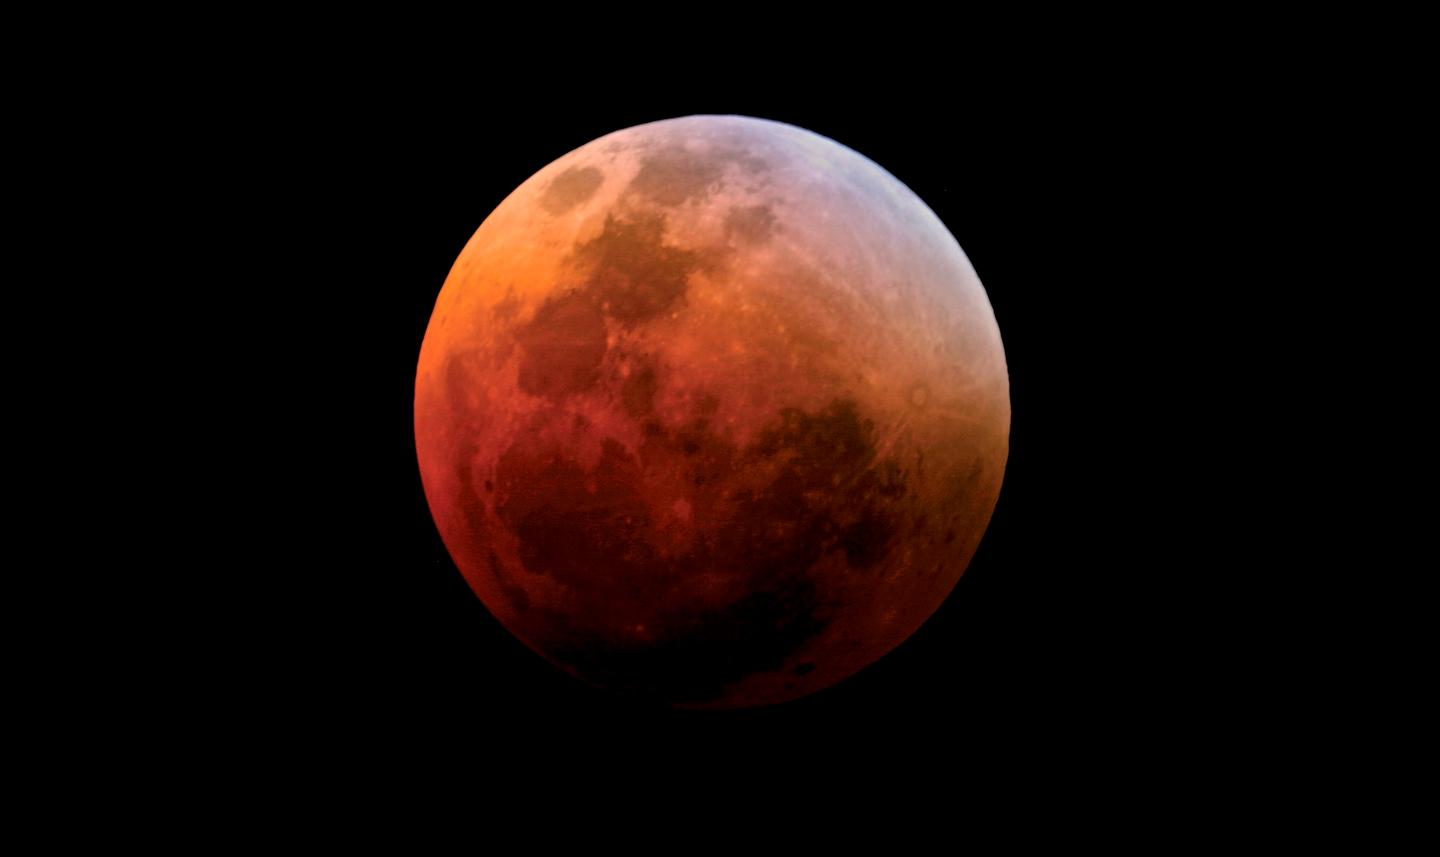 """This """"Supermoon Lunar Eclipse"""" or """"Super Blood Moon"""" has only happened five times since 1900 and if you miss out, you'll have to wait until 2033 for another chance to see it"""